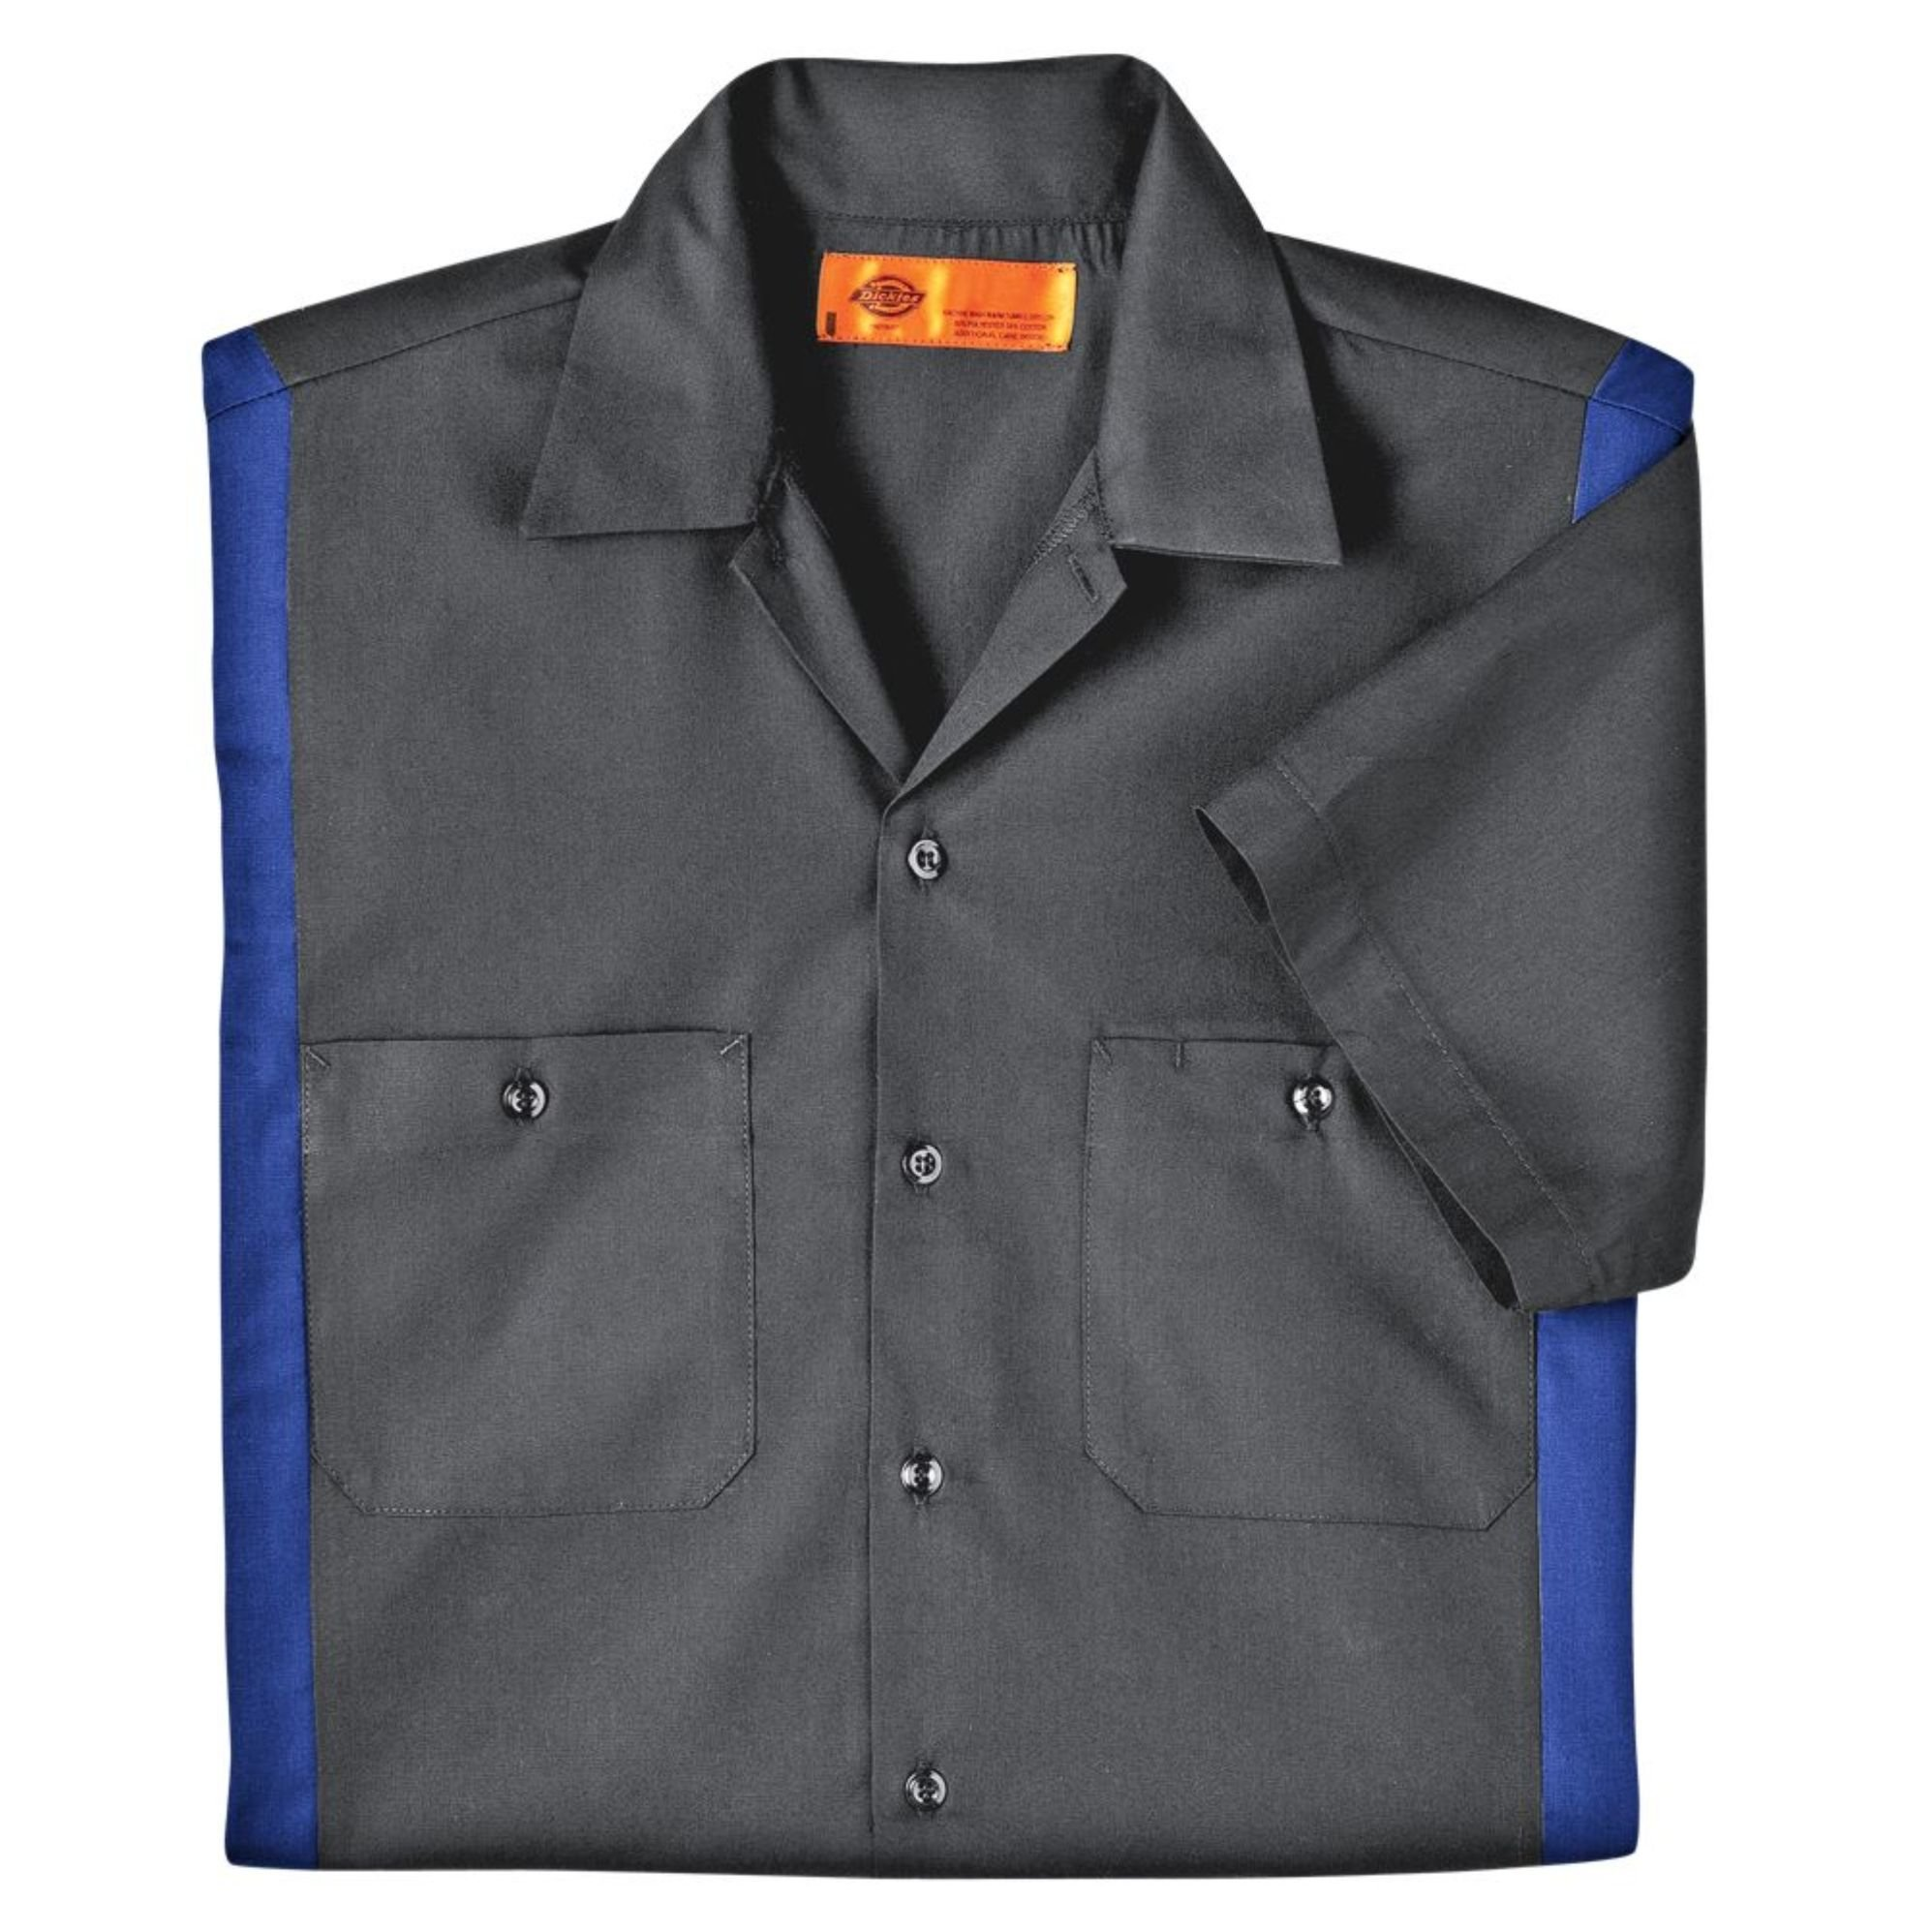 Dickies Occupational Workwear LS524CHRB 2XLT Polyester/Cotton Men's Short Sleeve Industrial Color Block Shirt, 2X-Large Tall, Dark Charcoal/Royal Blue